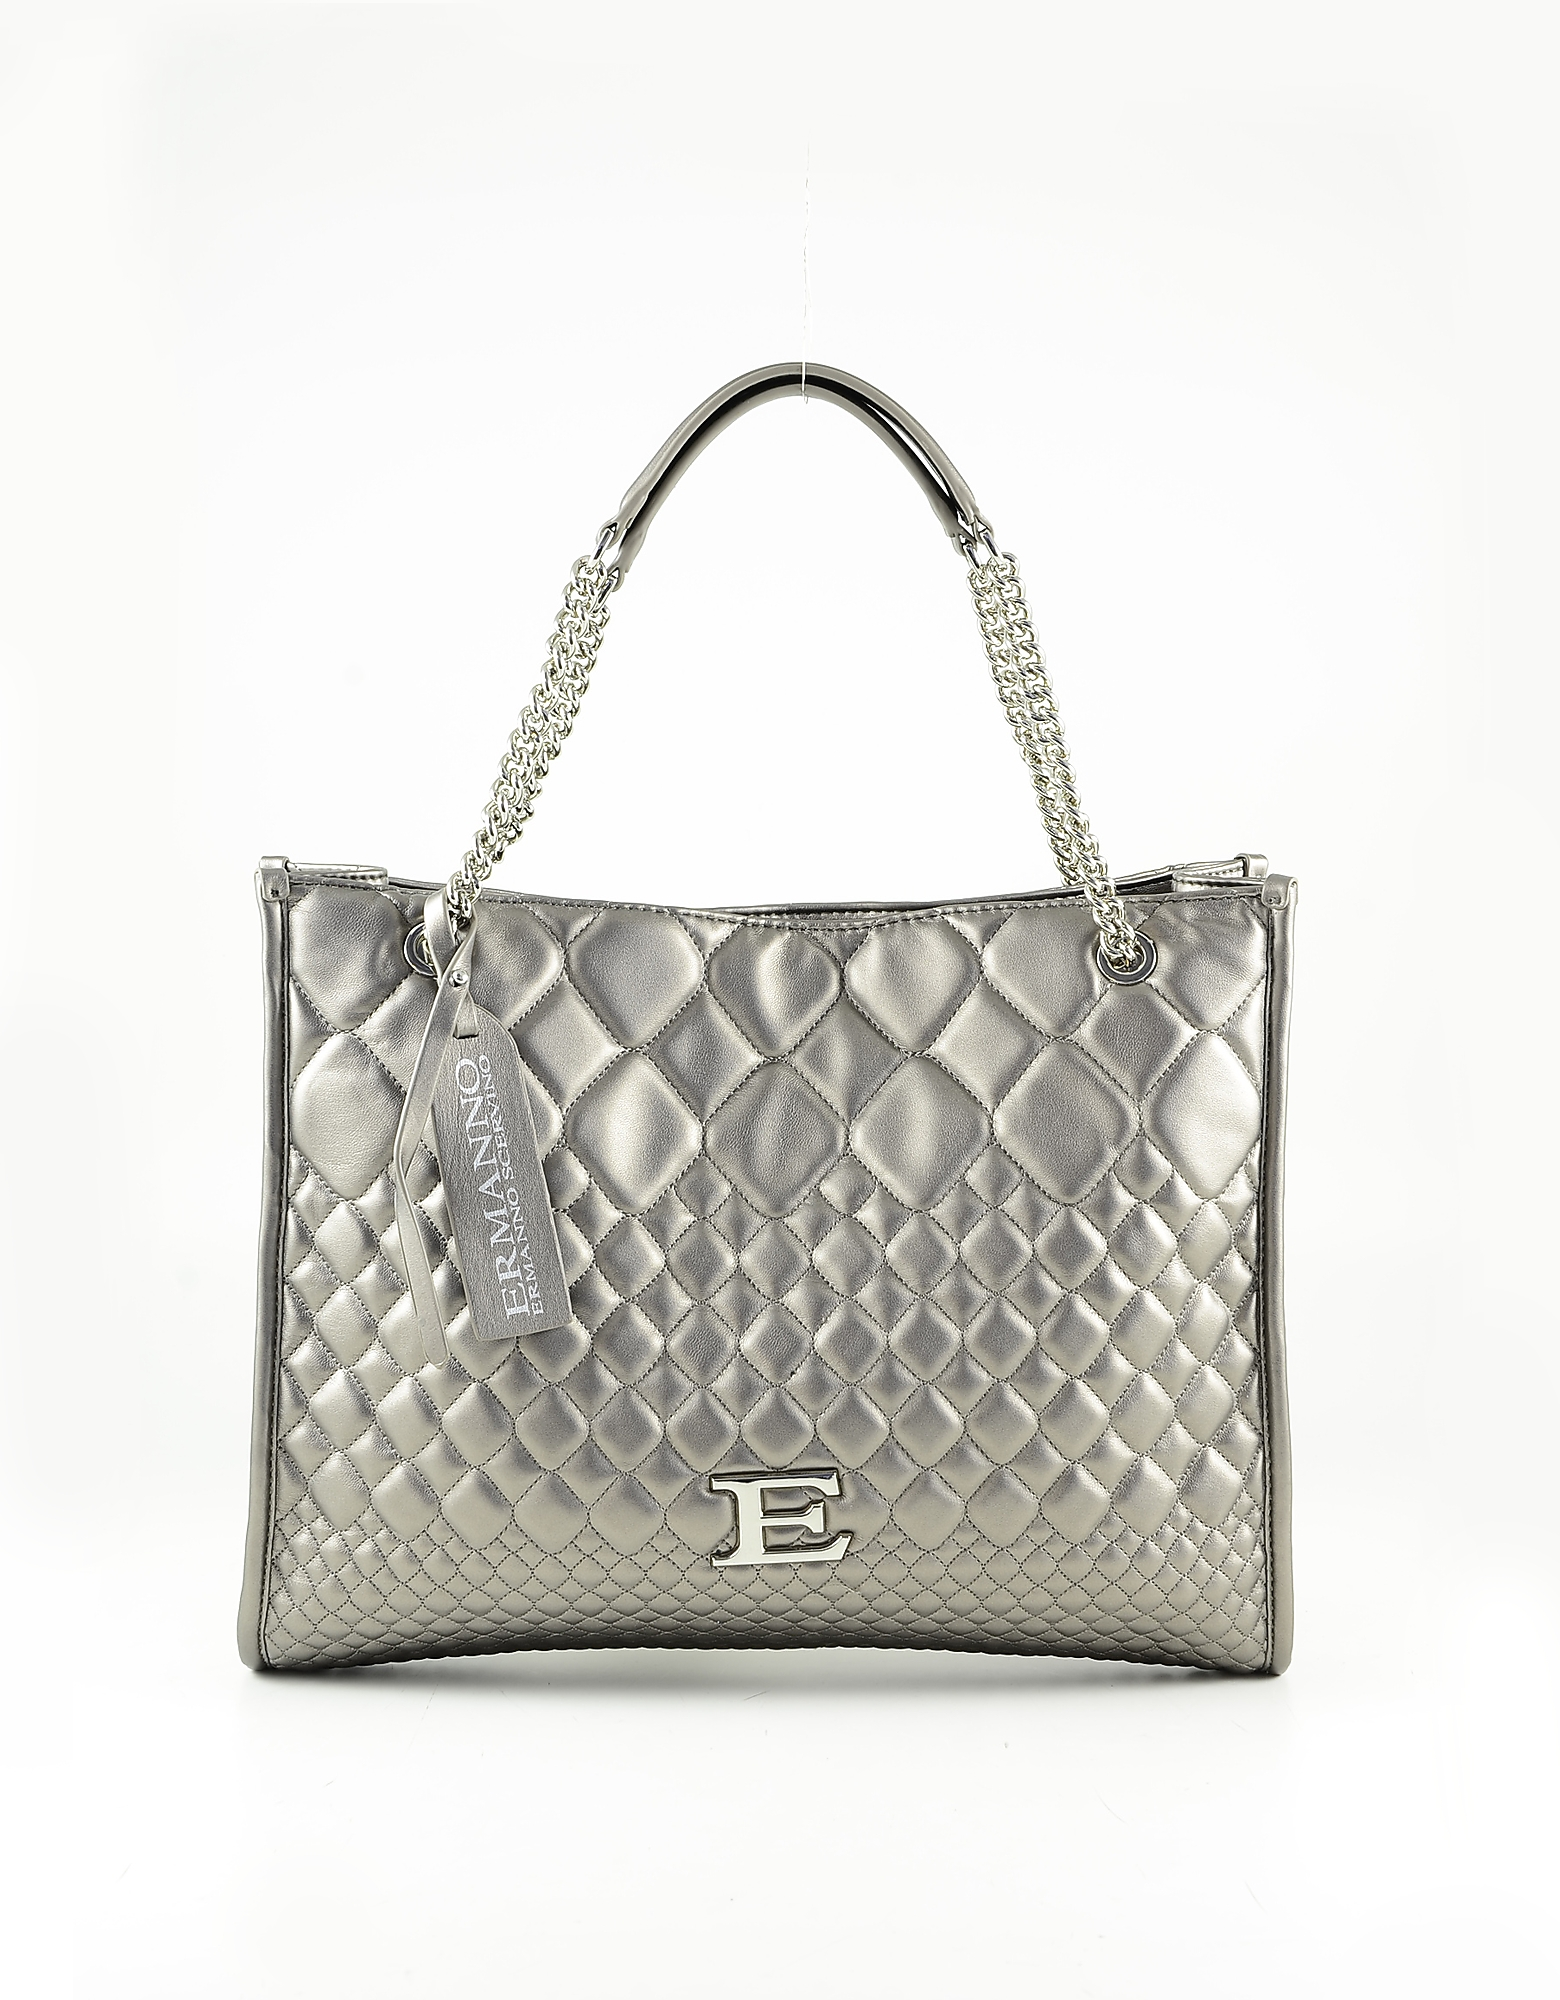 Ermanno Scervino Bronze Quilted Eco Leather Tote Bag